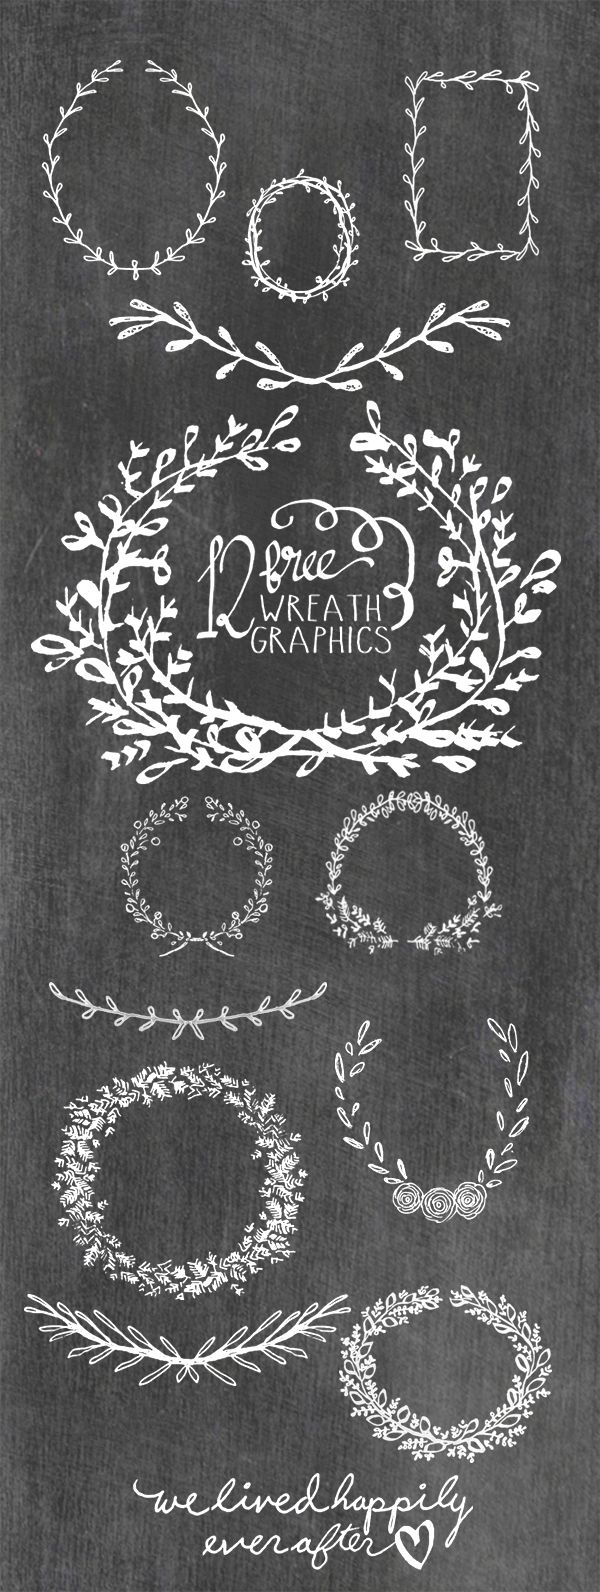 12 Free Wreath Graphics   We Lived Happily Ever After   Bloglovin'